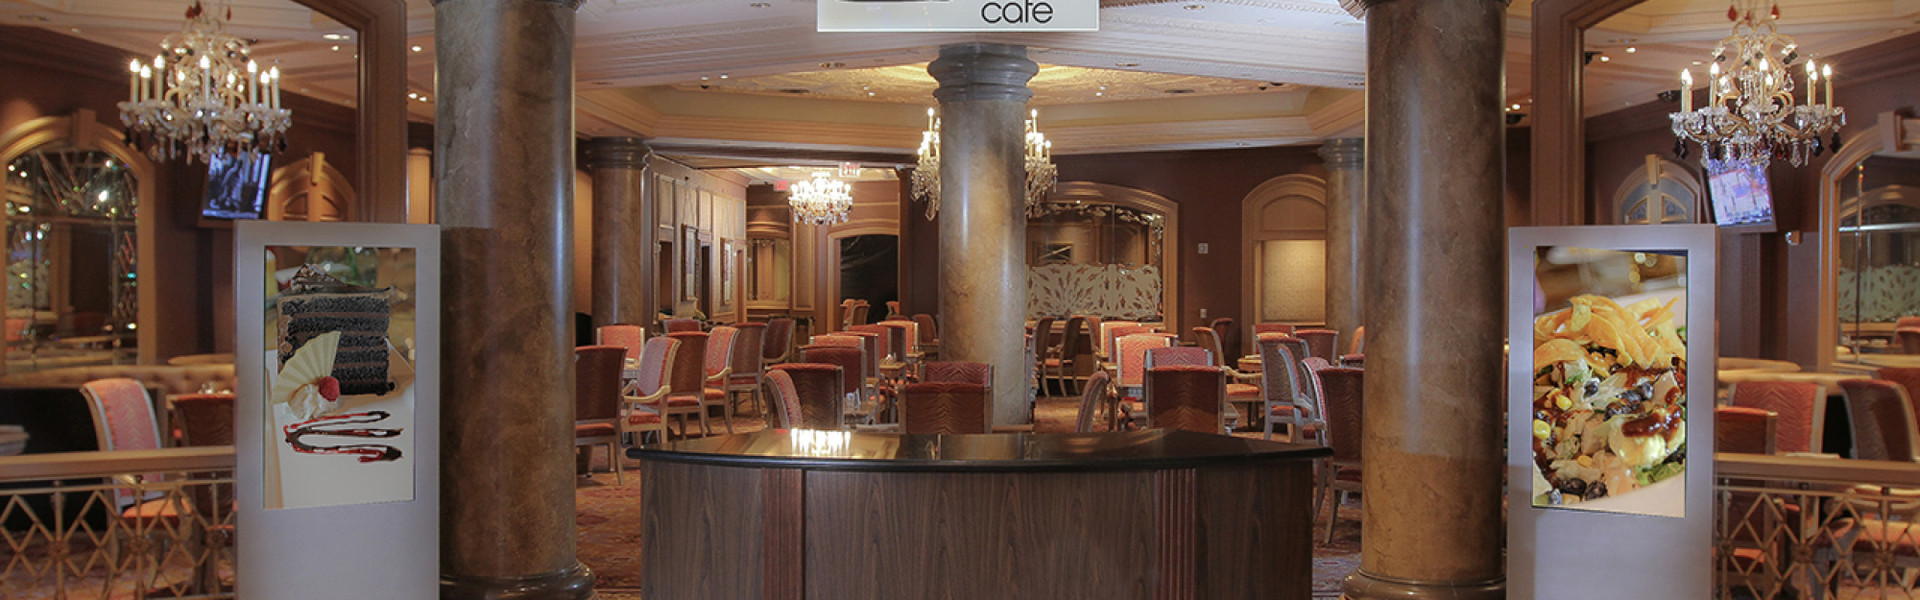 Sid's Cafe at our Las Vegas Hotel and Casino | Interior of Sid's Cafe